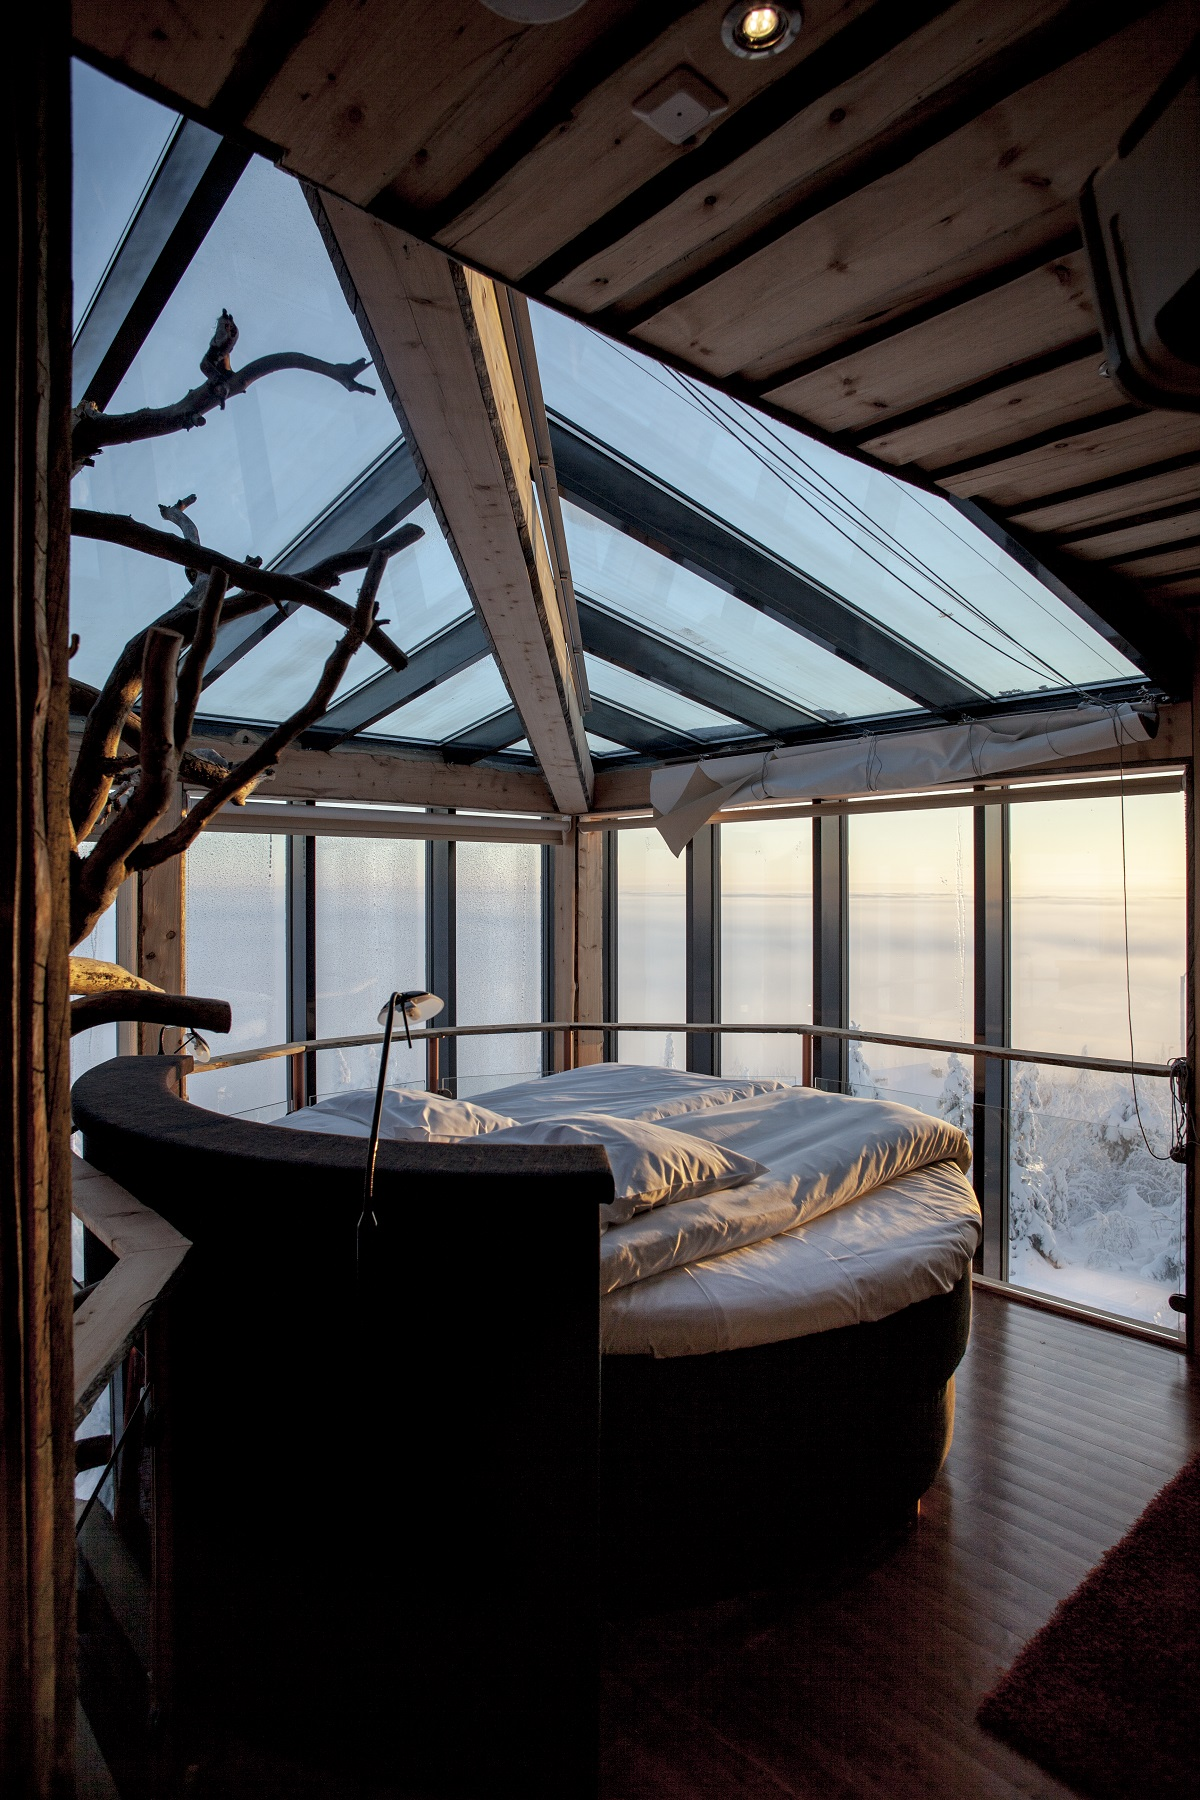 The Eagles View Suite - Finland - Your No.1 source of Architecture ...